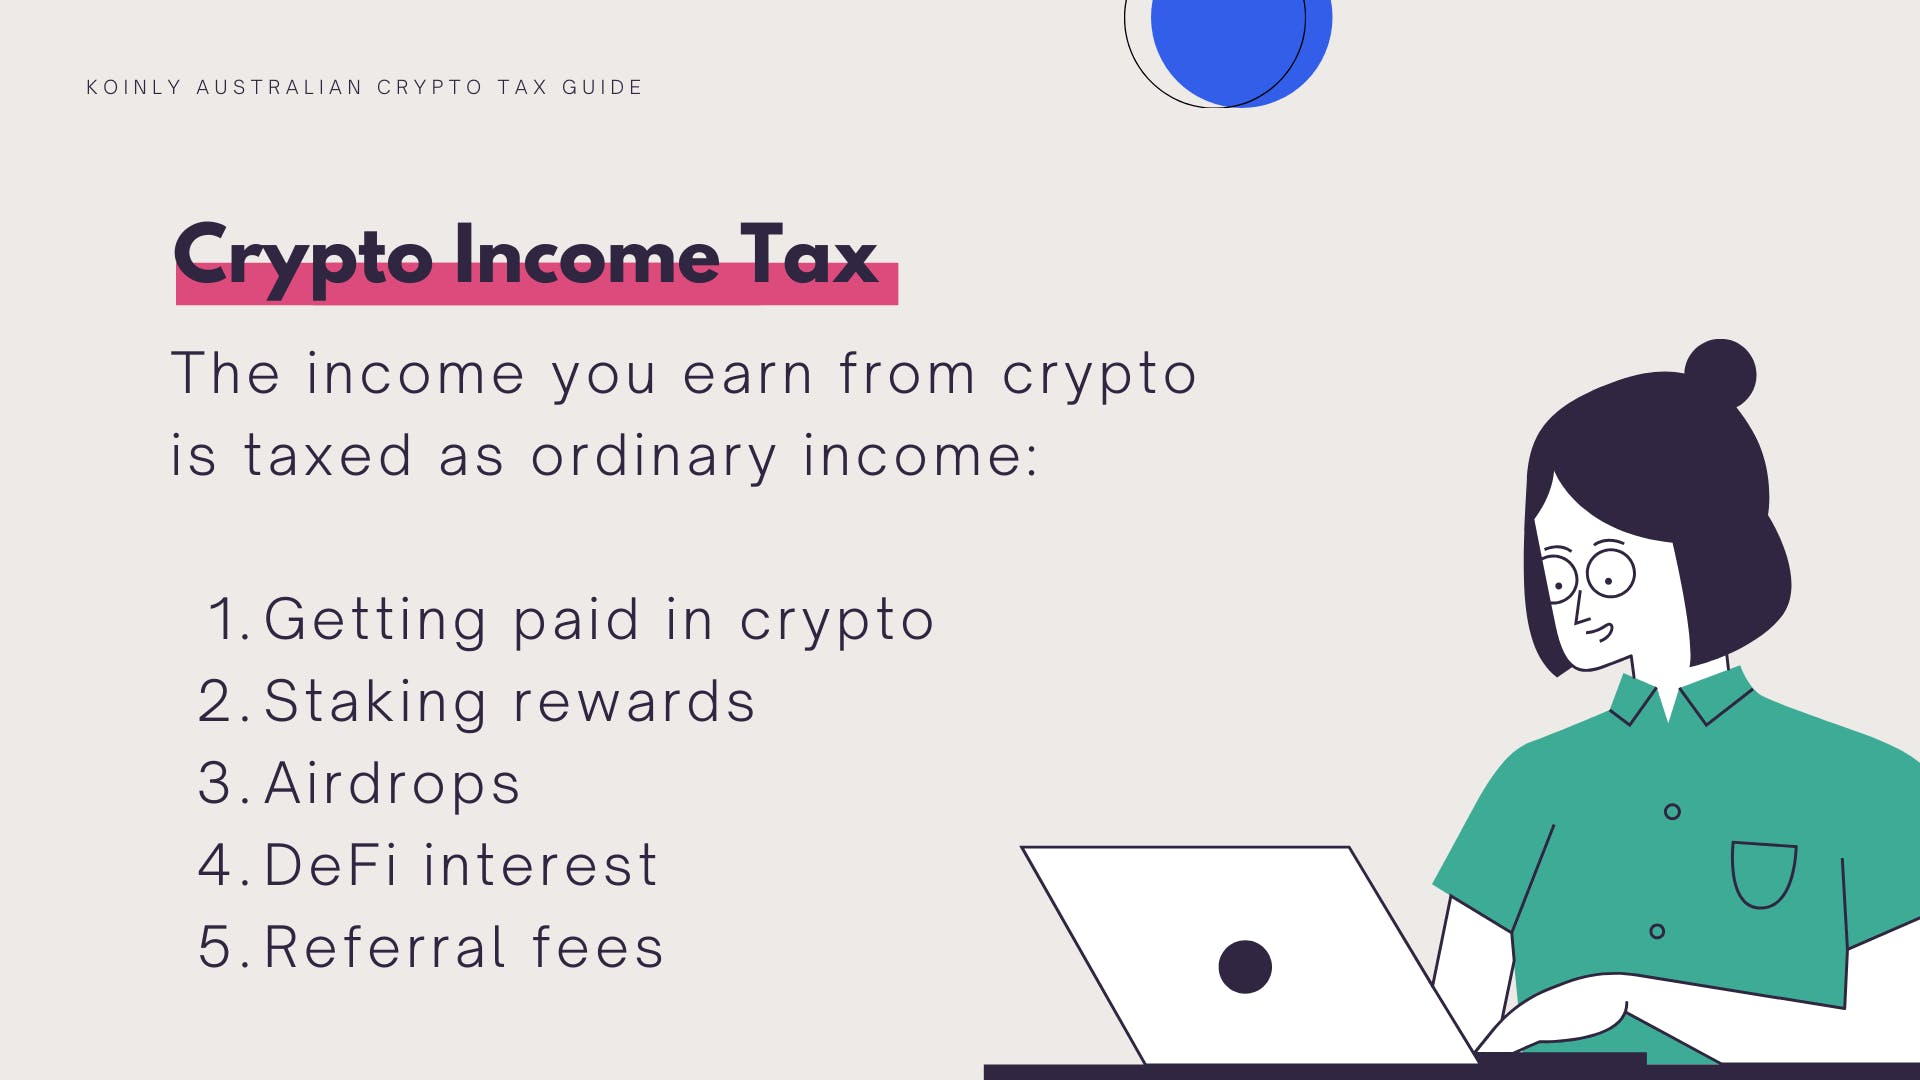 Australian crypto can be taxes as Income Tax in certain situations